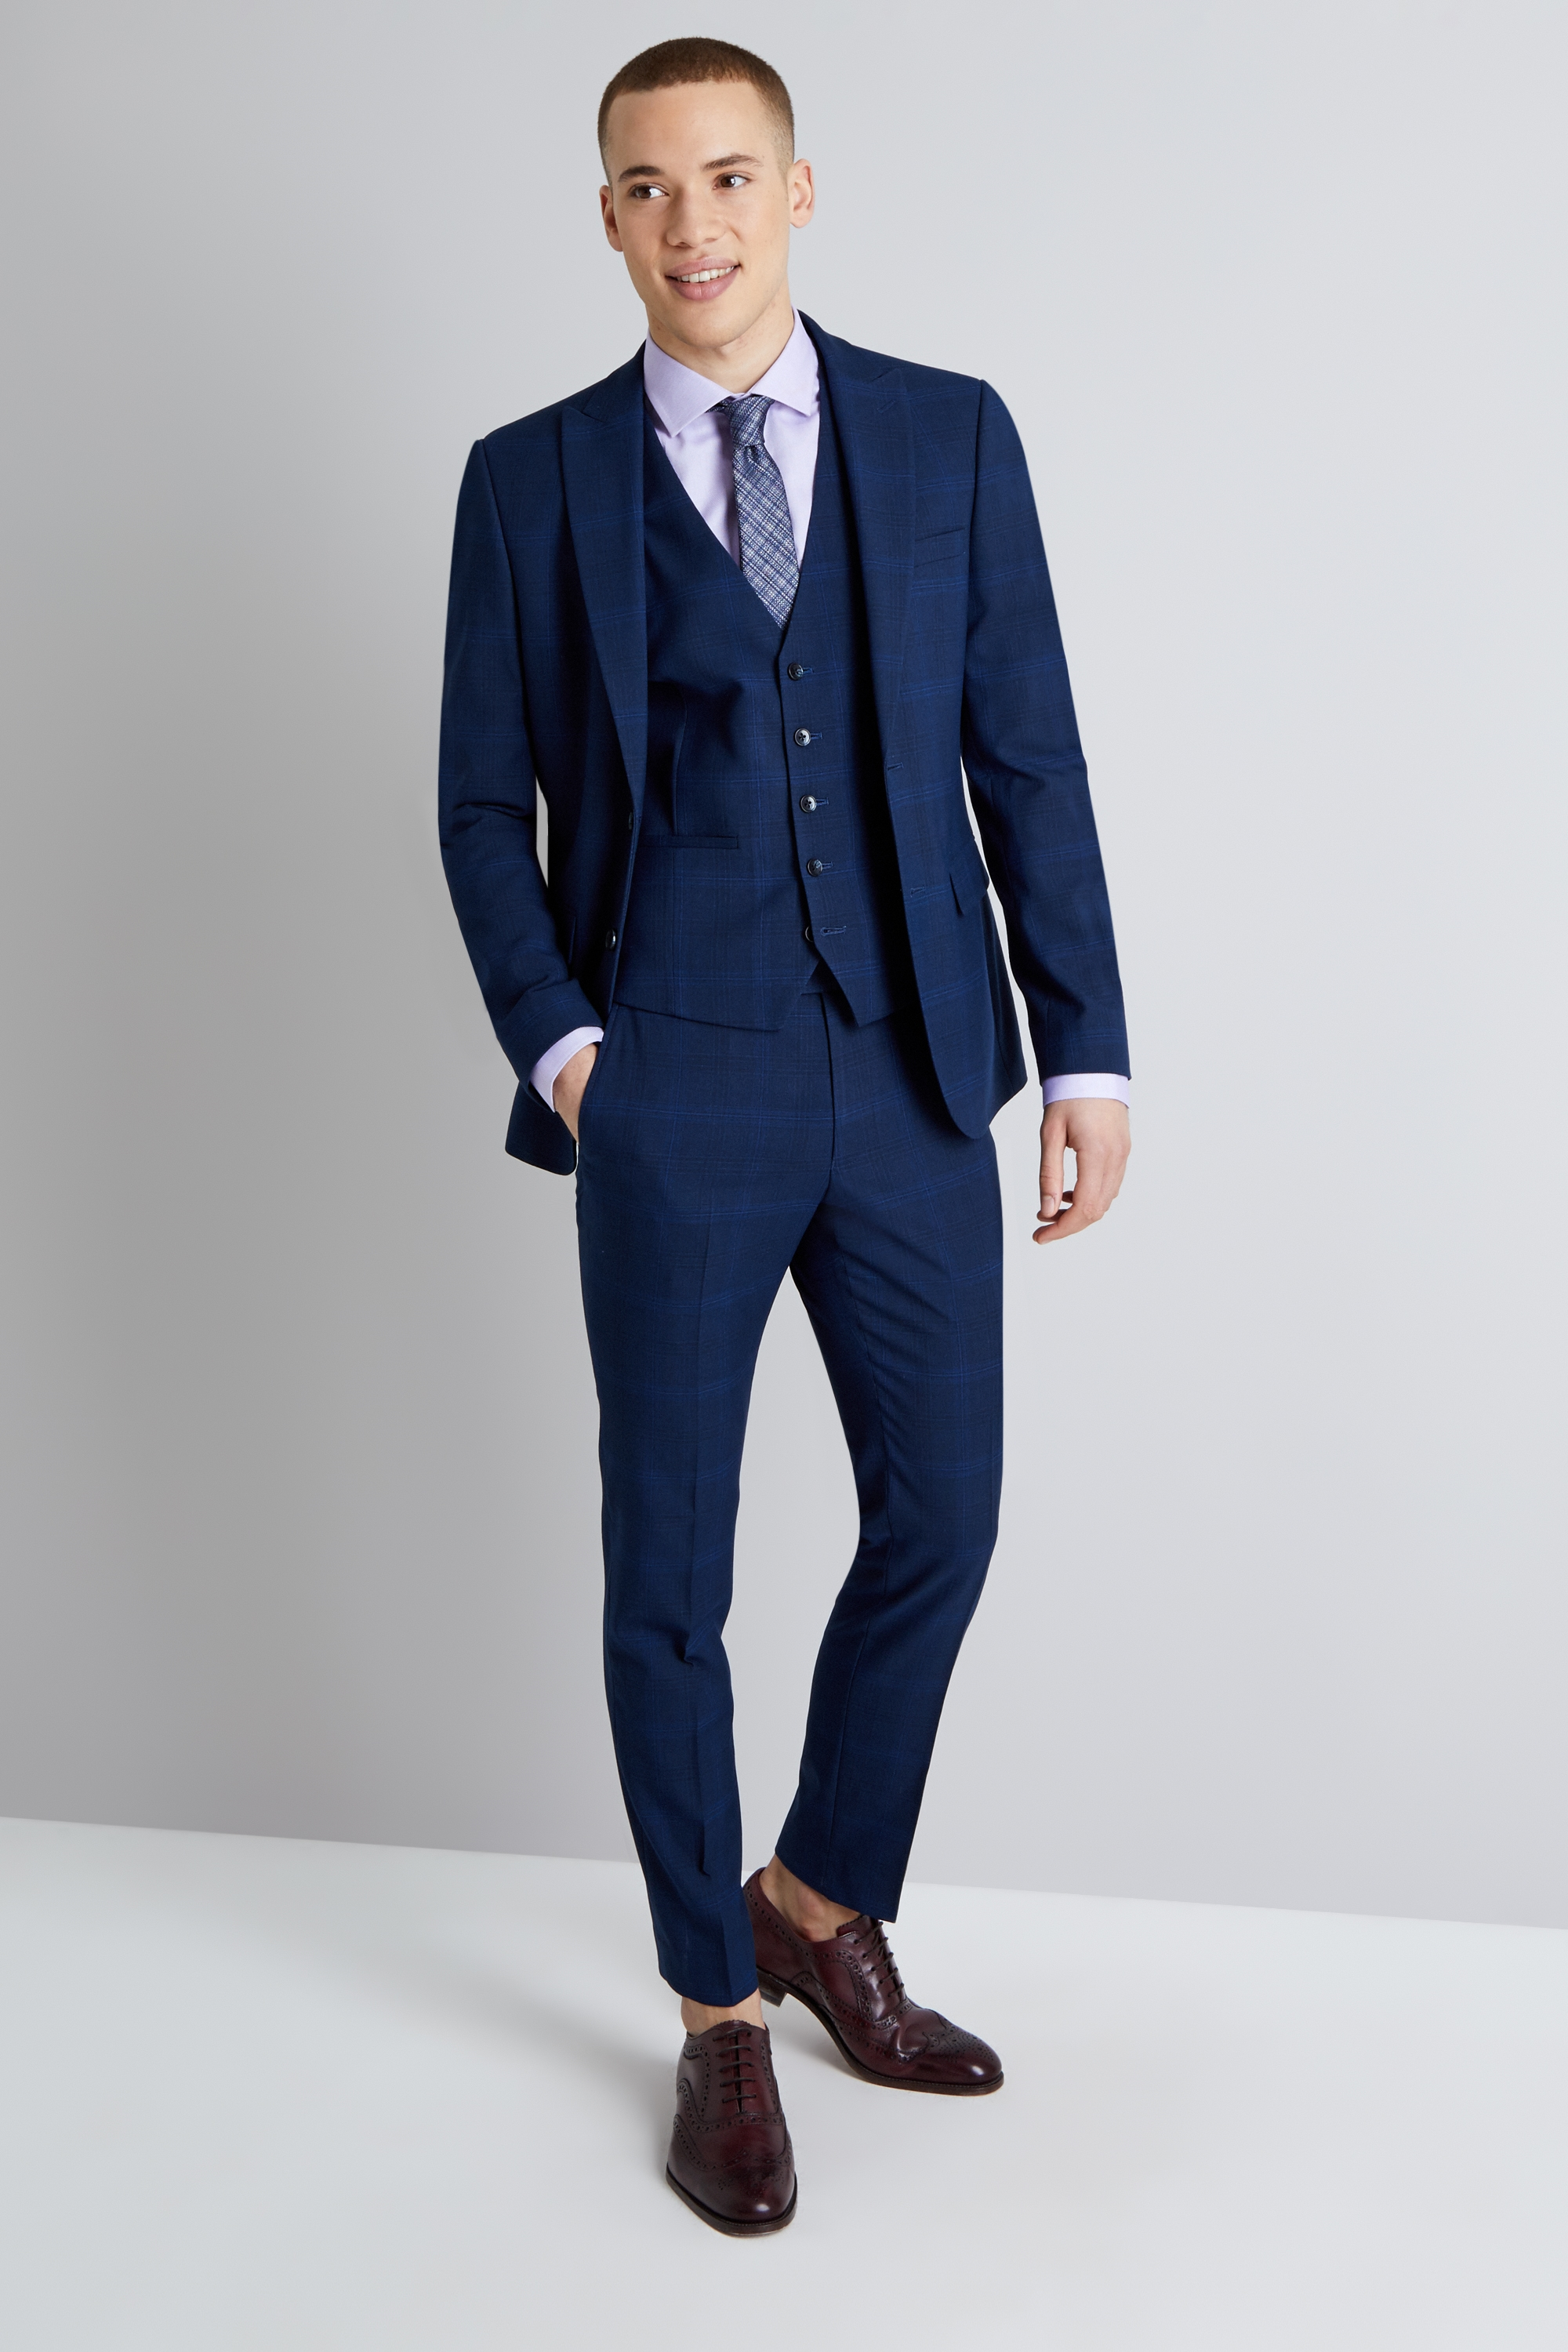 A SUIT TO TRAVEL IN The Kensington - Men's Slim-Fit Navy Wool Suit 'A Suit To Travel In' PAUL SMITH Men's Tailored-Fit Blue Plaid Wool Suit. From £ PAUL SMITH Men's Tailored-Fit Grey Tweed Wool And Silk-Blend Suit. From £ PAUL SMITH.